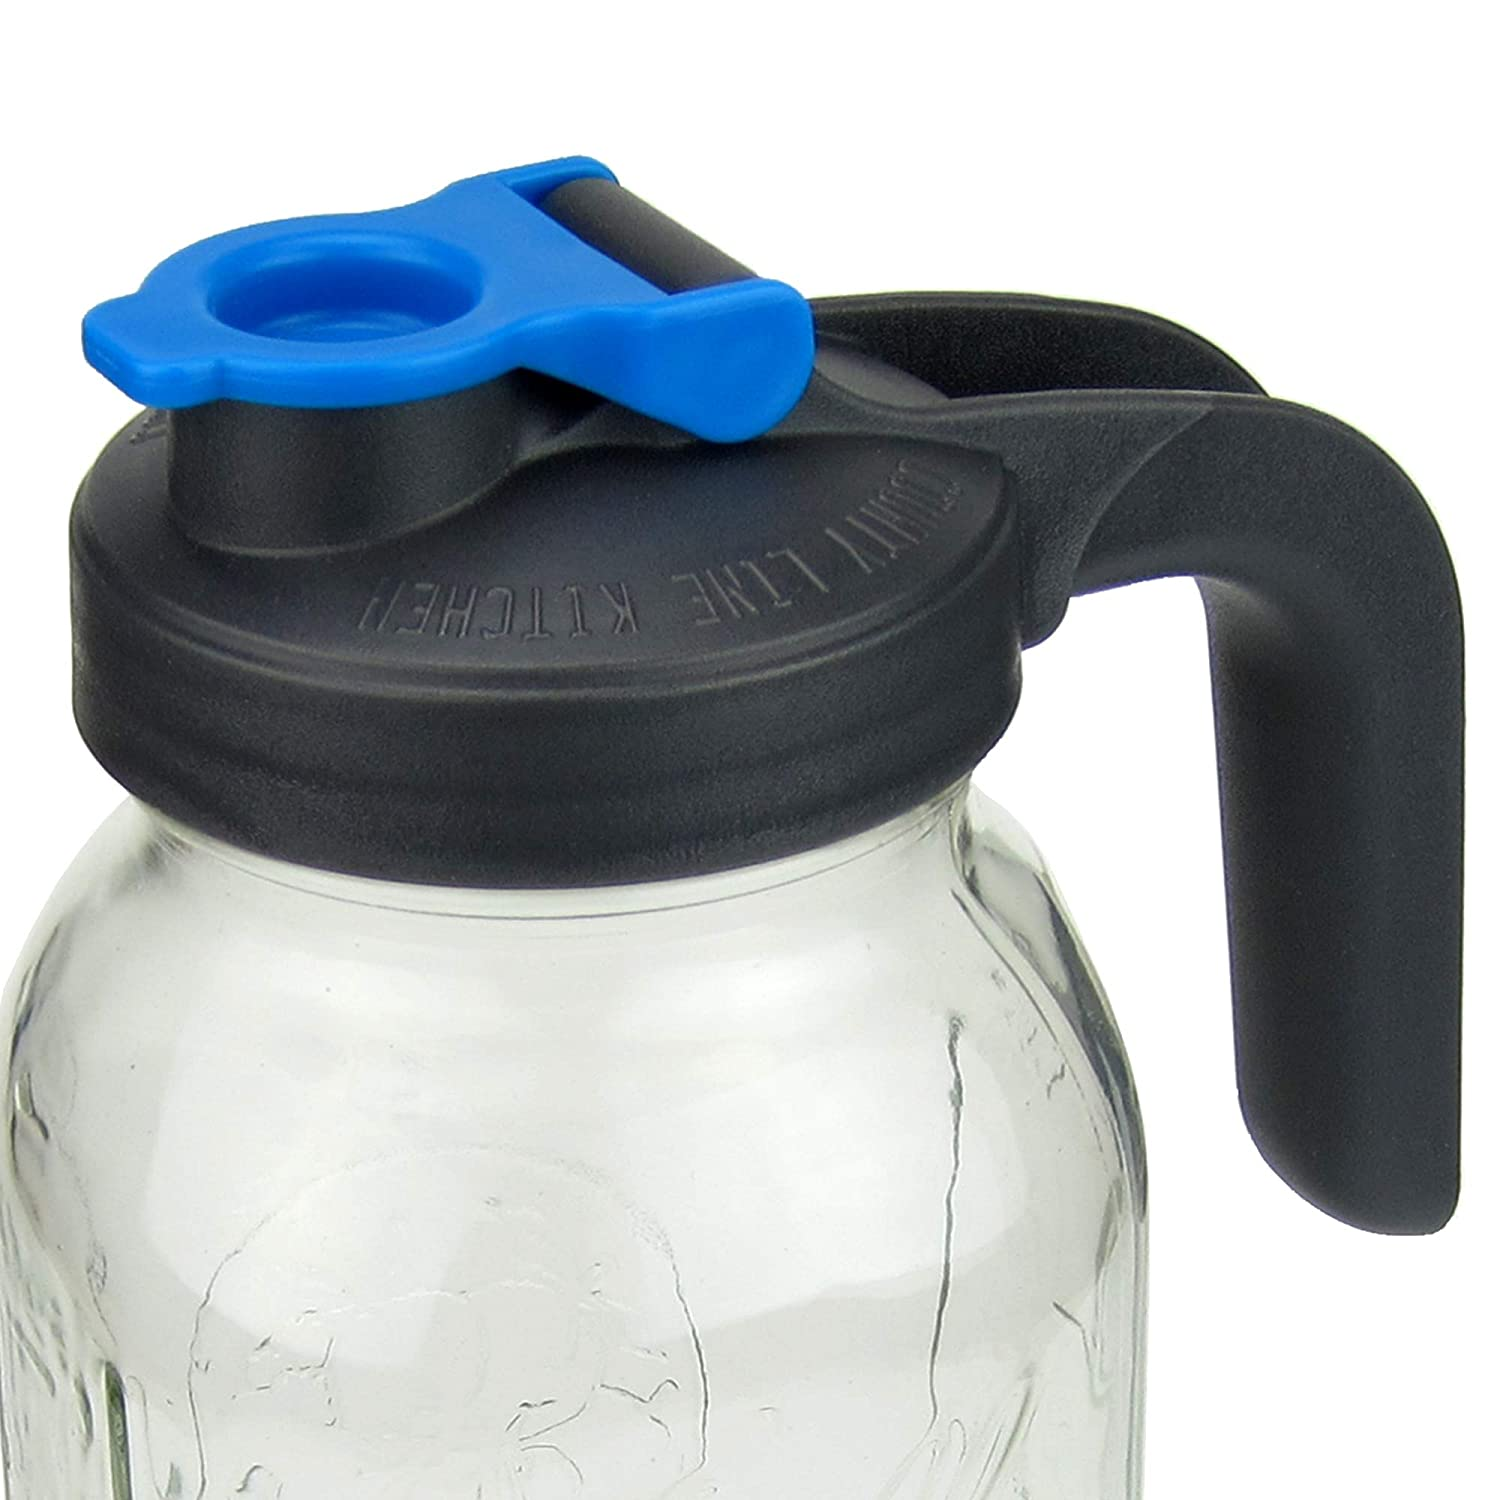 Pour and Store! Wide Mouth Mason Jar Flip Cap Lid With Handle by County Line Kitchen with Airtight, Leak-Proof Seal and Innovative Flip Cap (WIDE MOUTH, HANDLE, Blue, 1 Pack)